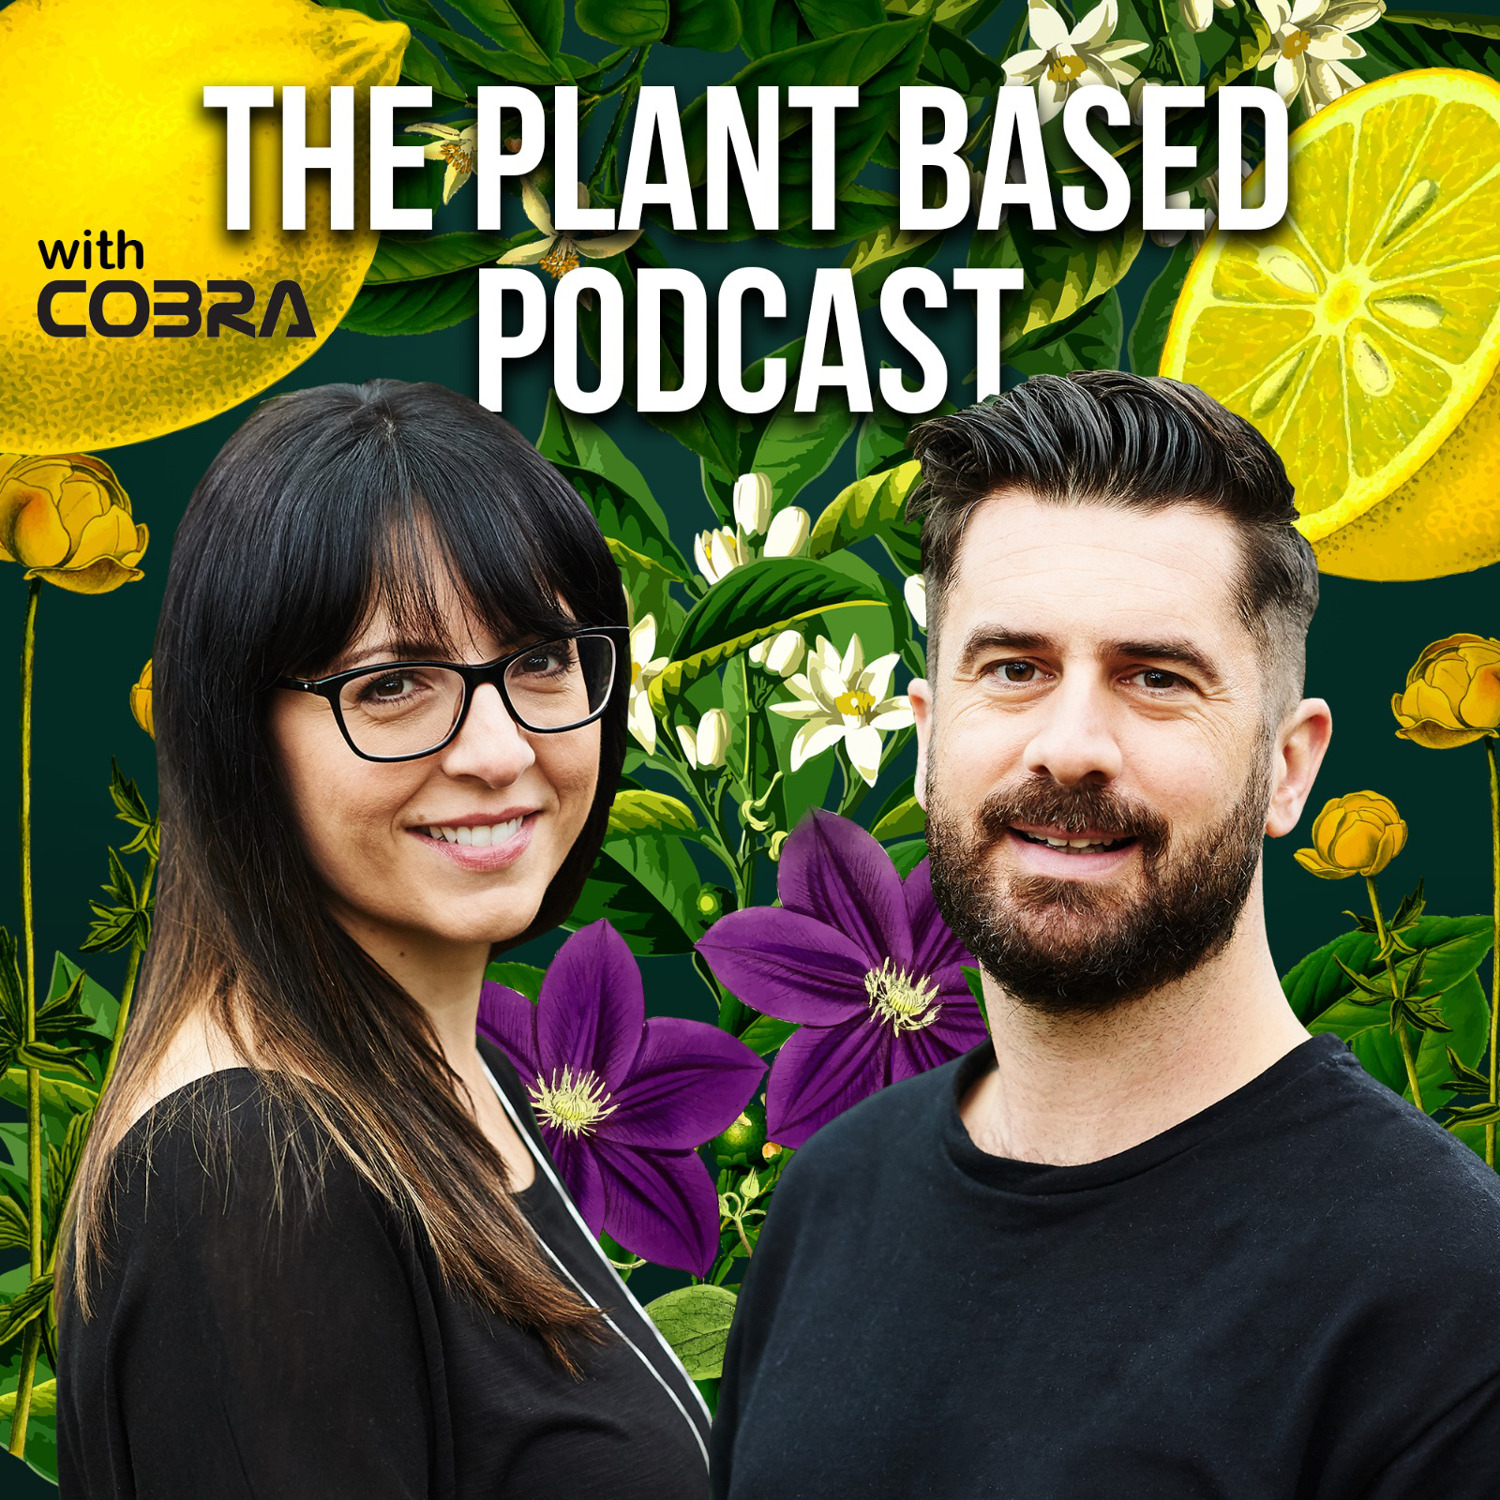 The Plant Based Podcast S4 - News 04/07/21